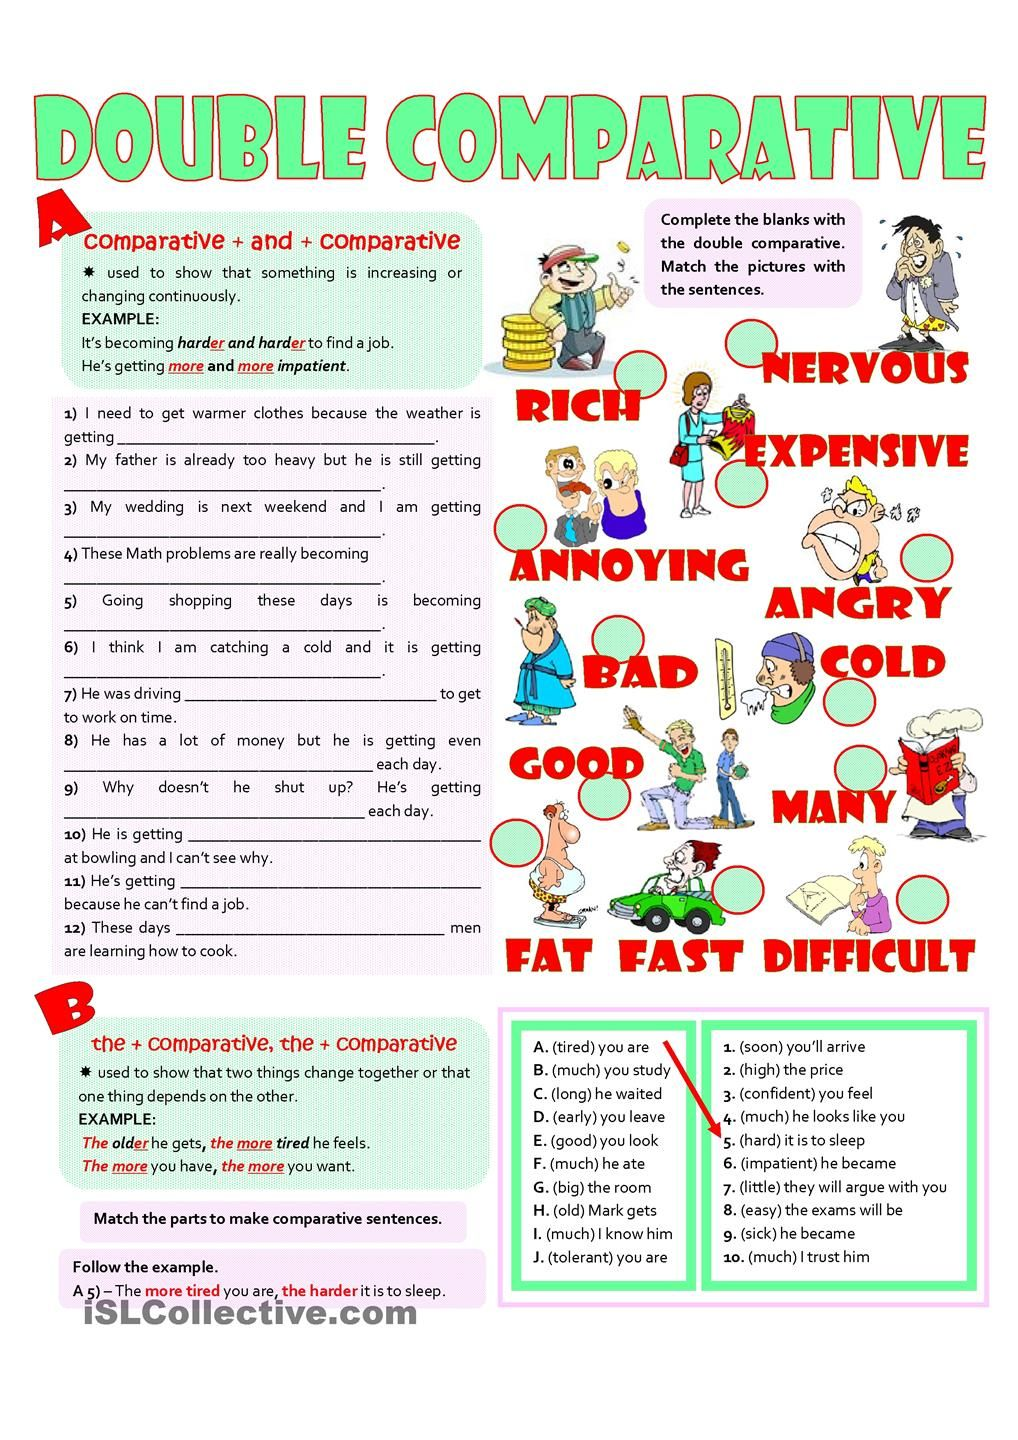 Double Comparatives Comparative Adjectives Grammar And Vocabulary Teaching English Grammar